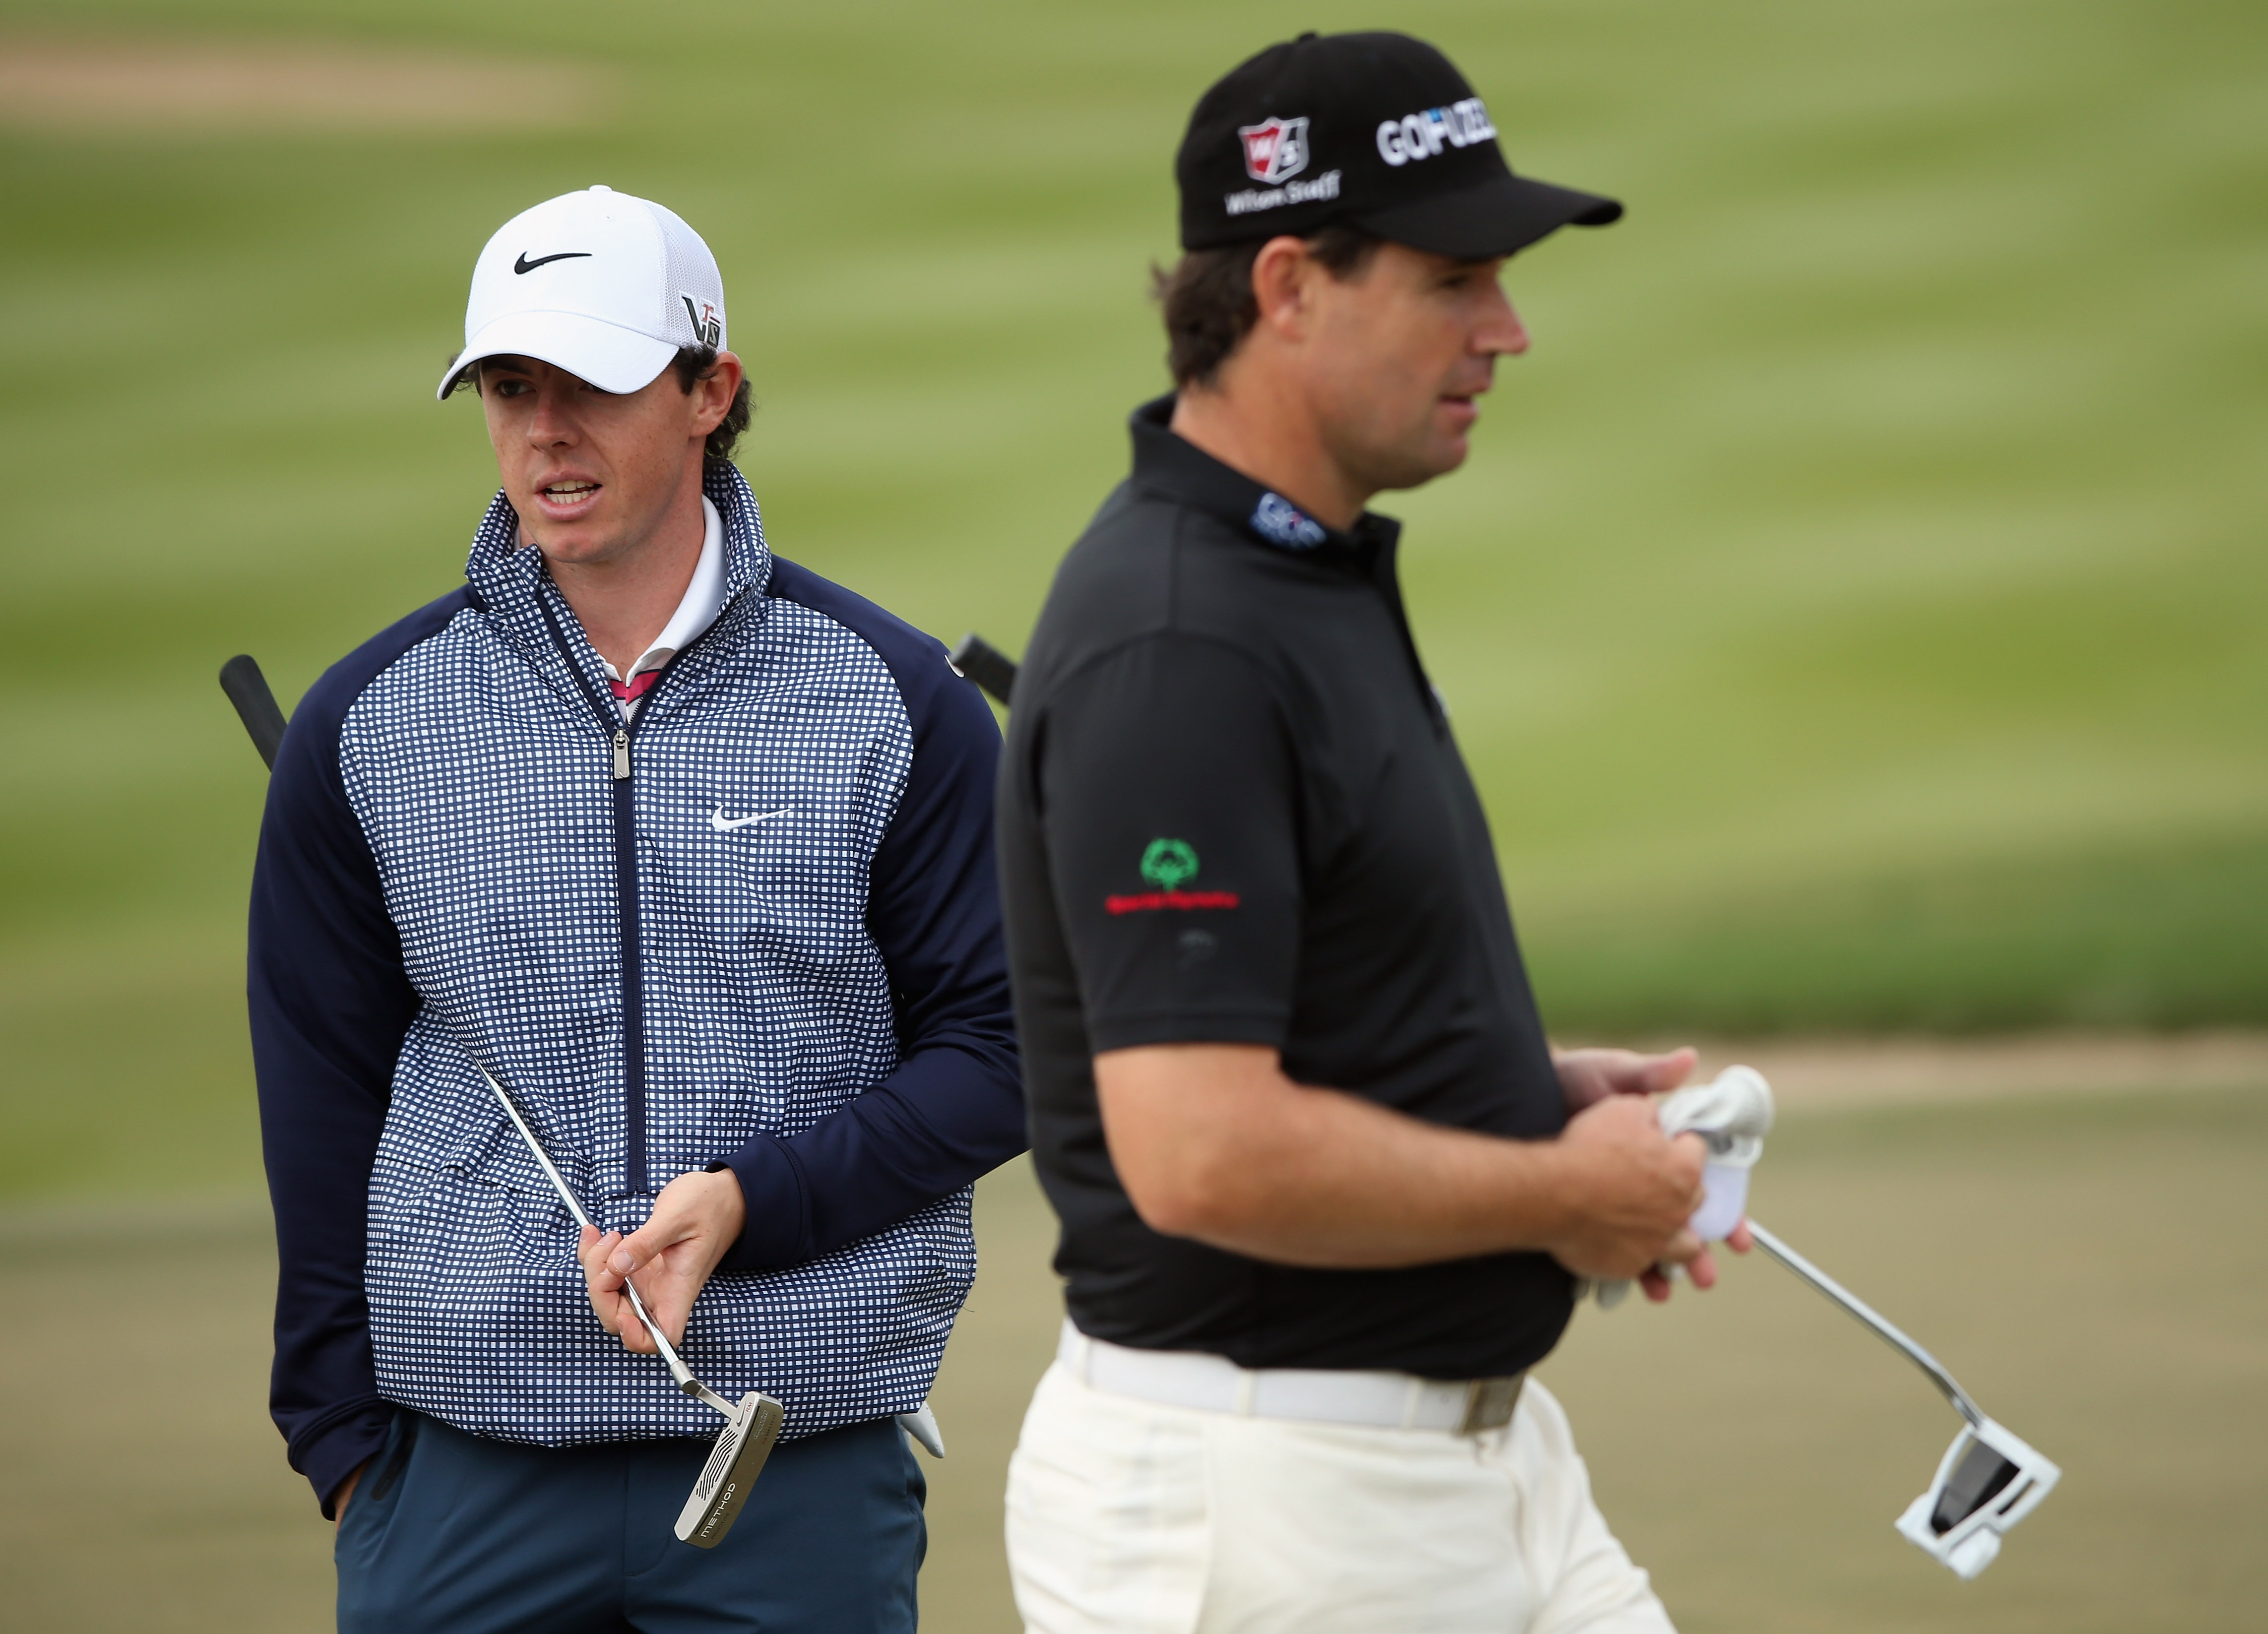 Rory McIlroy and Padraig Harrington are pictured together during practice for The Abu Dhabi HSBC Golf Championship on January 15, 2013